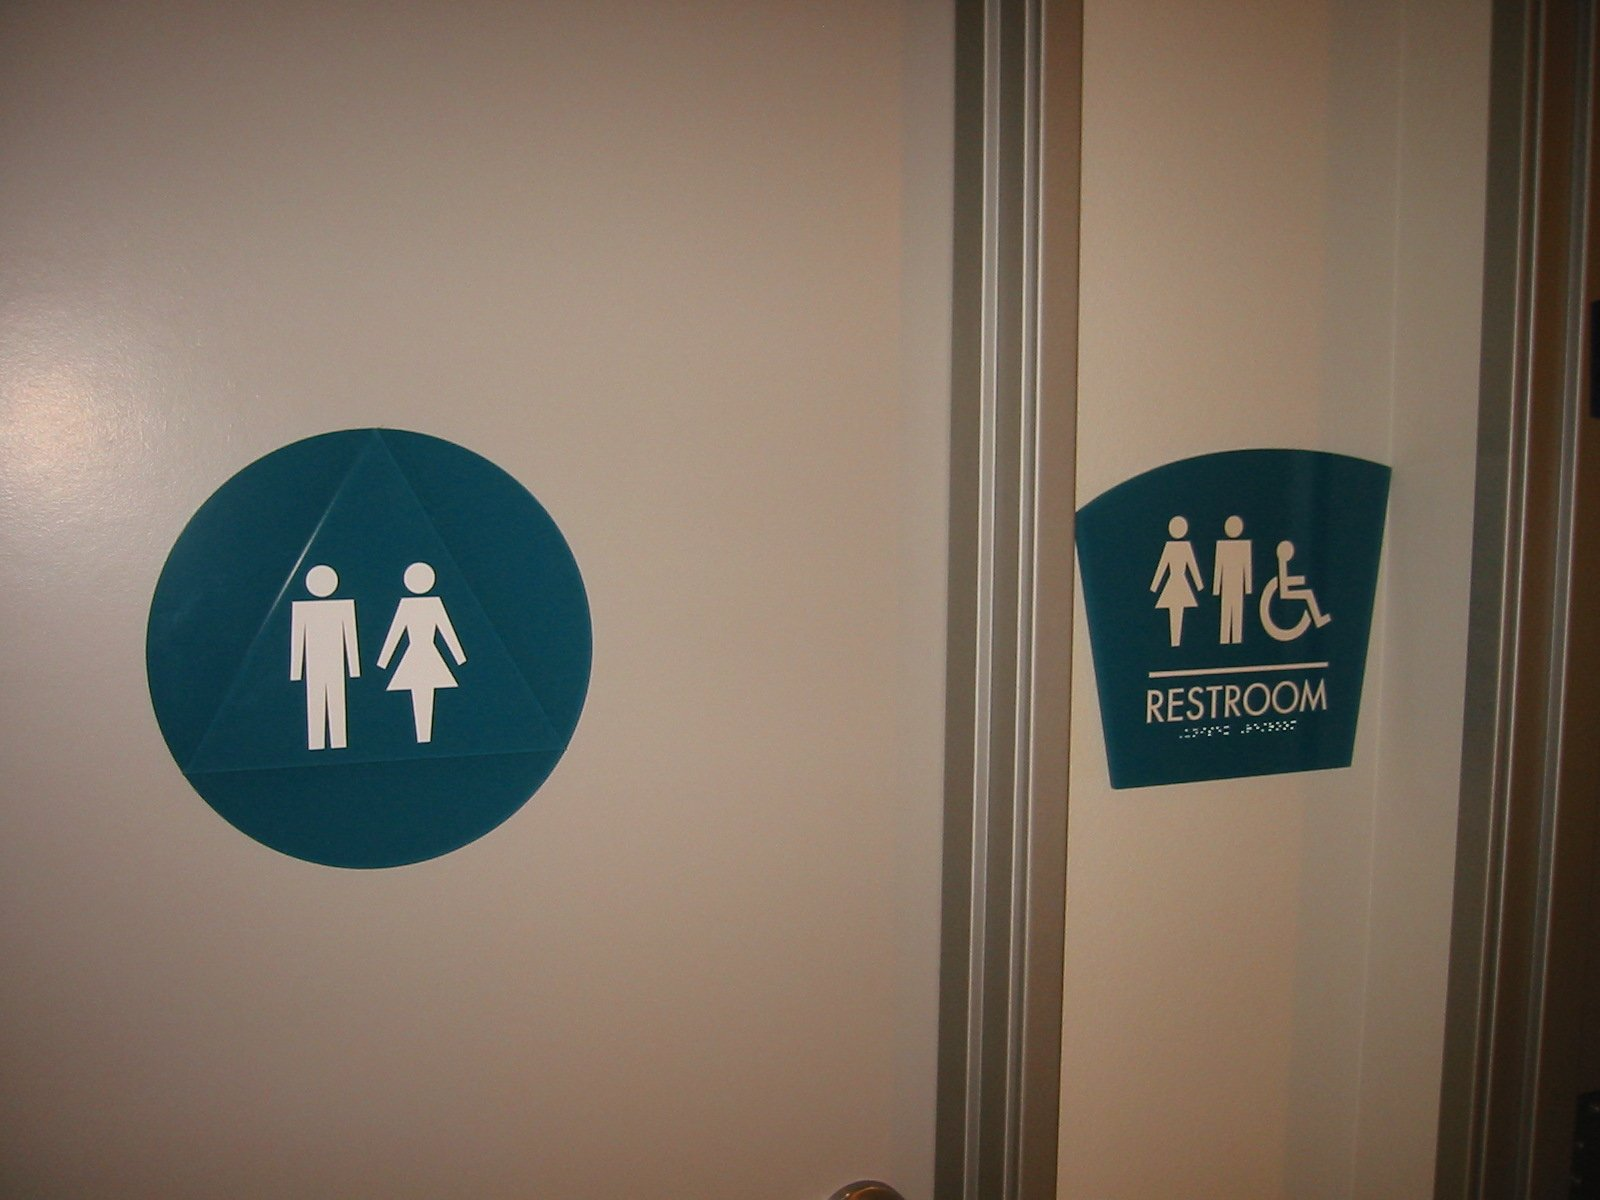 Medical ADA Restroom Signs